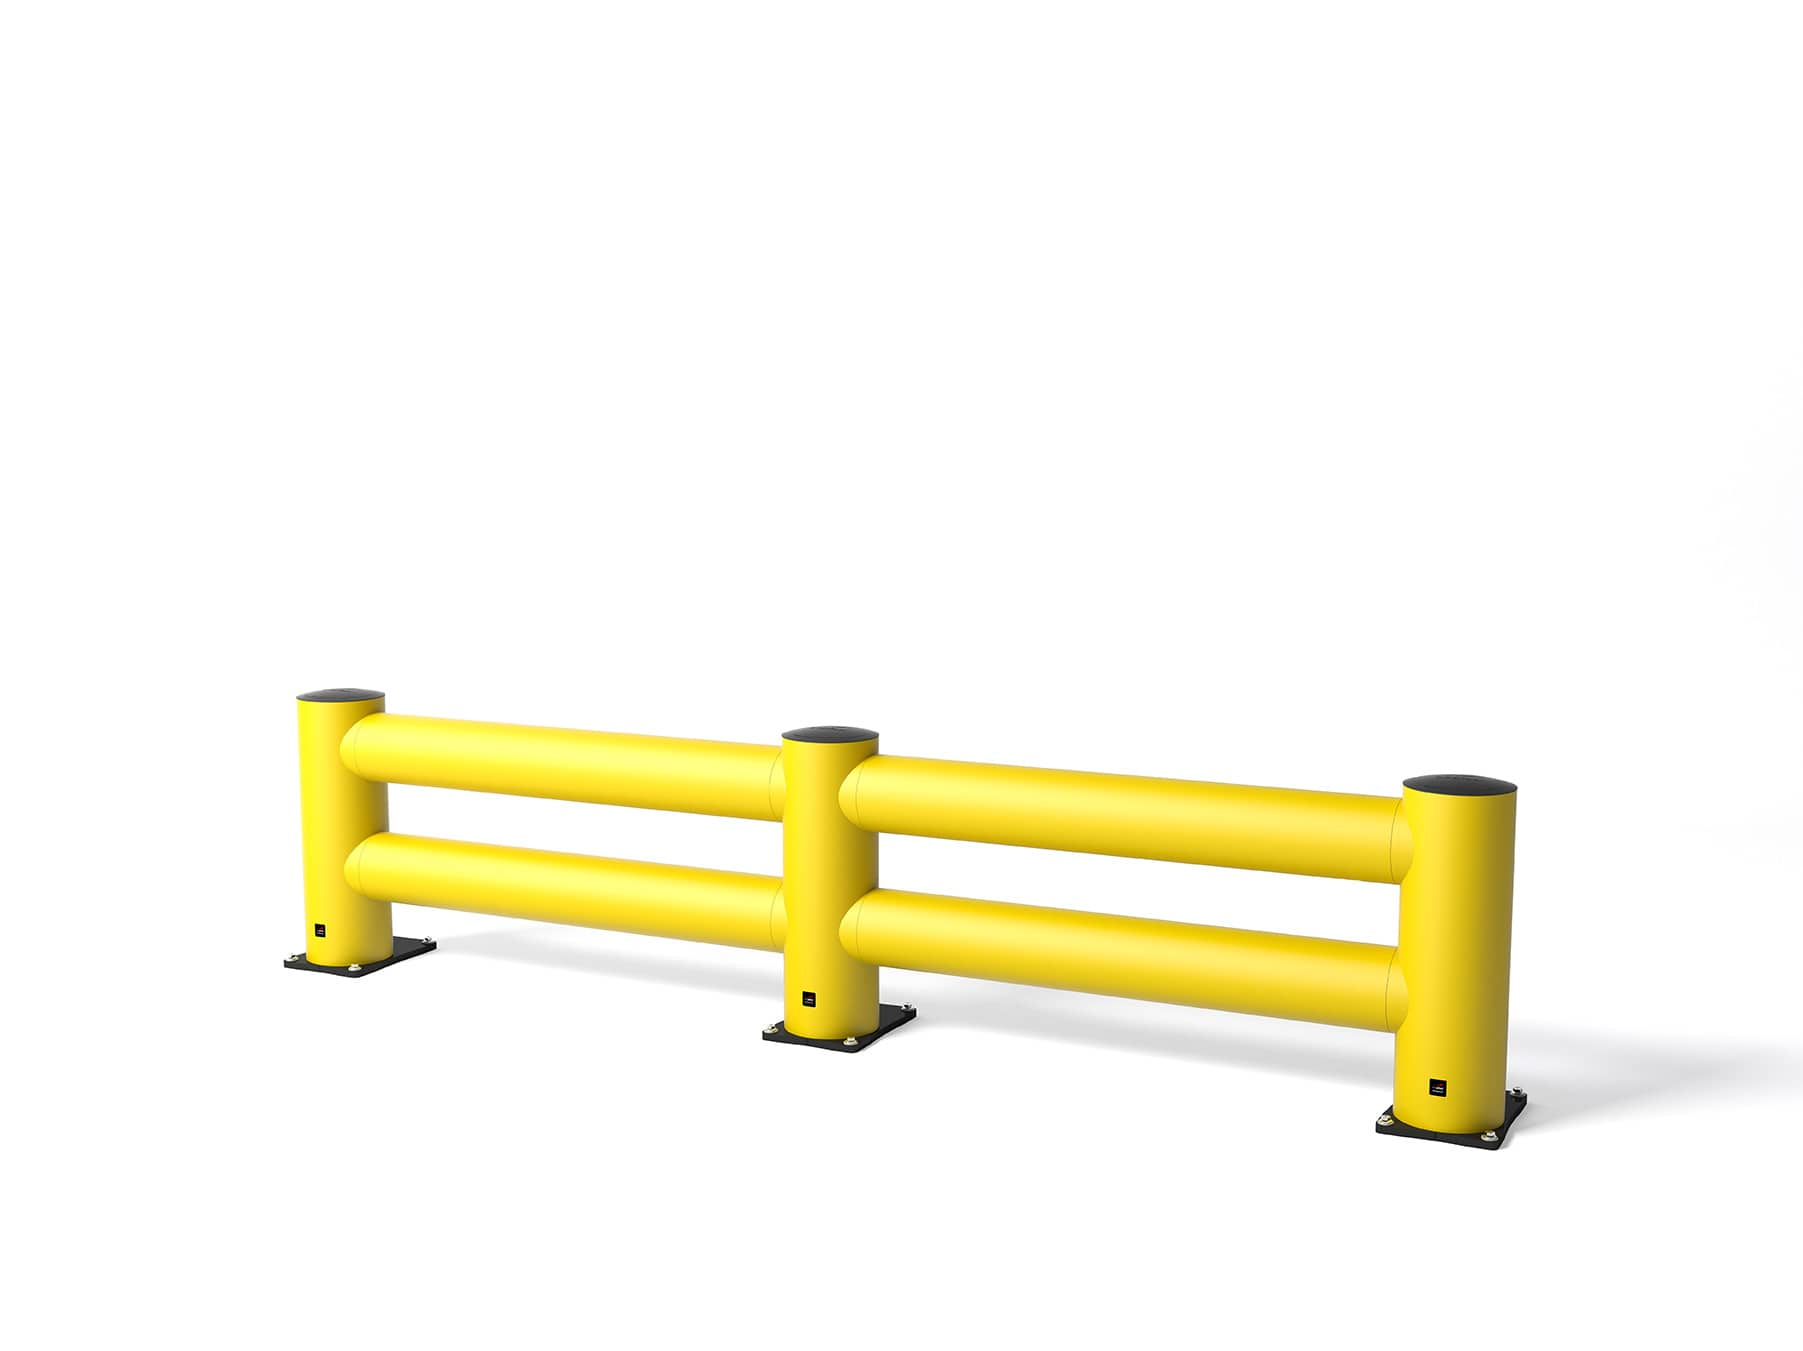 flex-impact-traffic-safety-barrier-tb_double_super-min.jpg